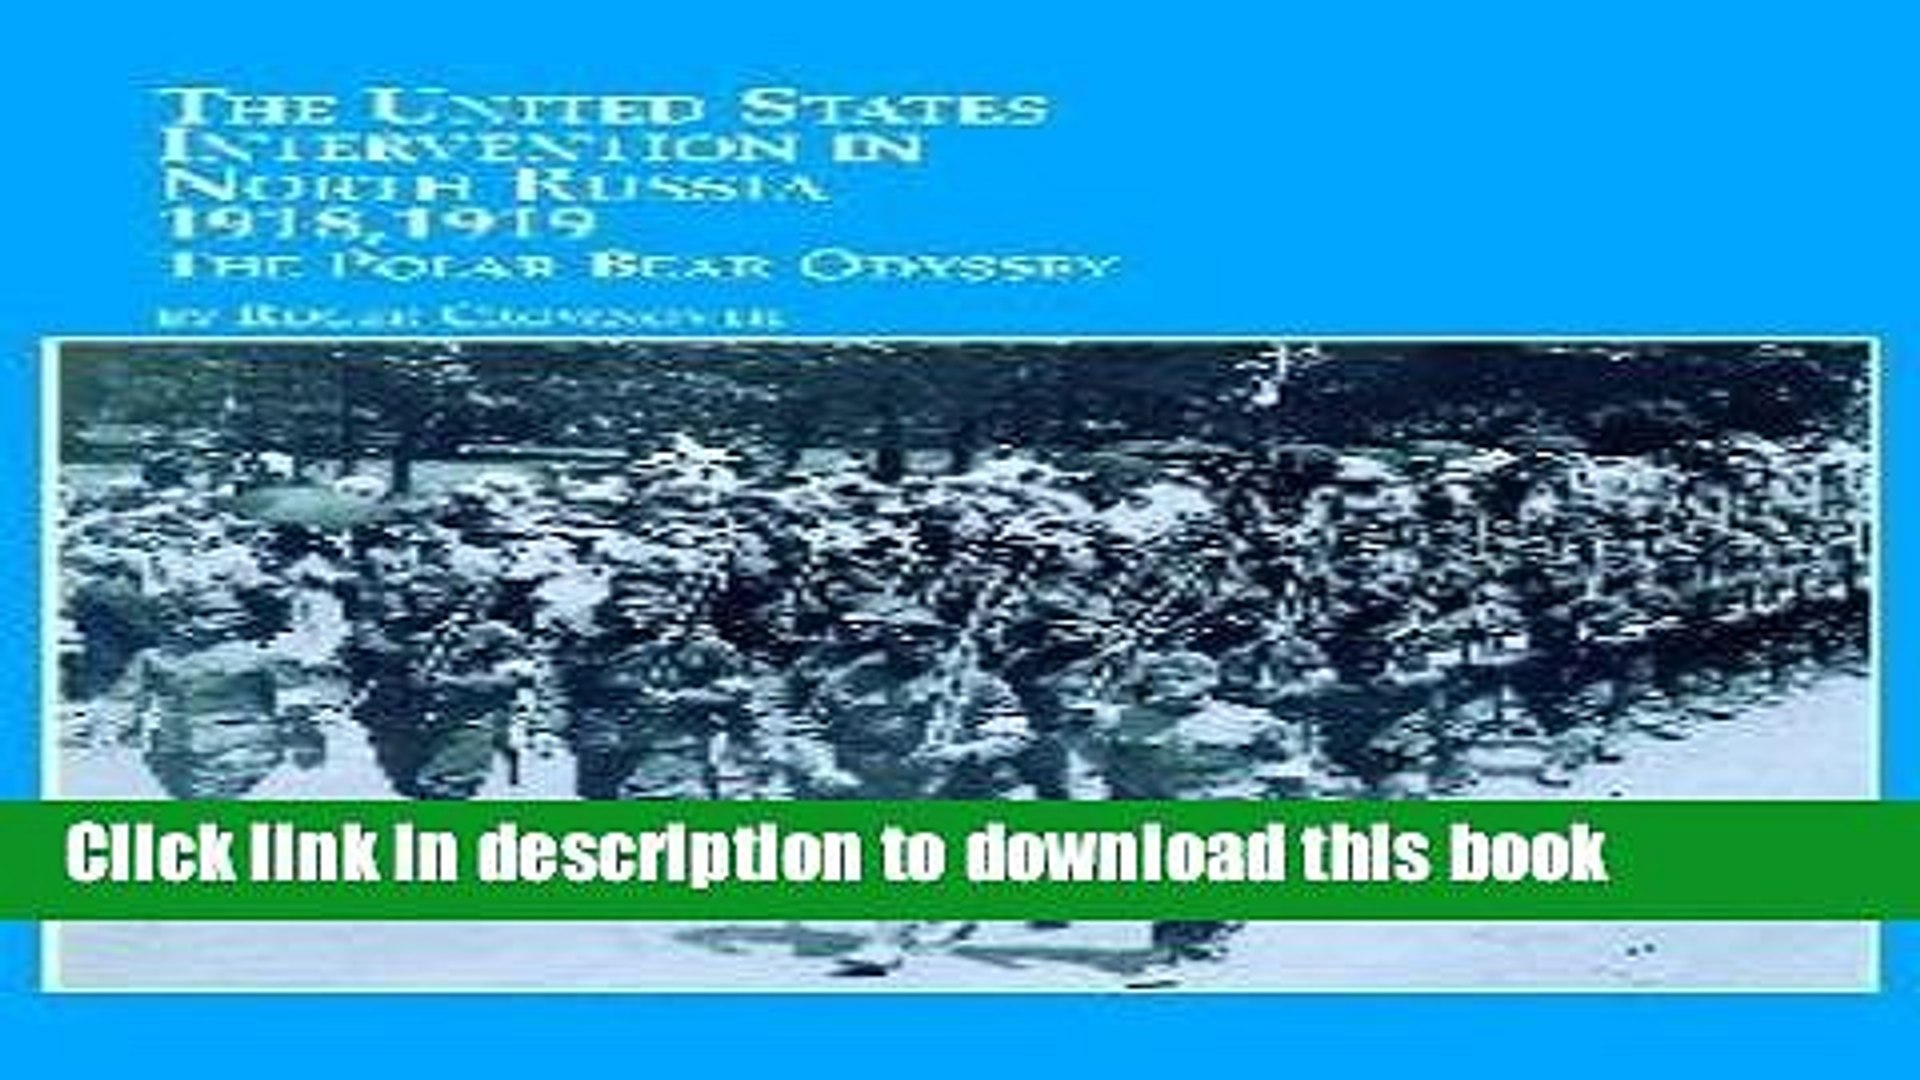 Read Book The United States Intervention in North Russia - 1918, 1919: The Polar Bear Odyssey